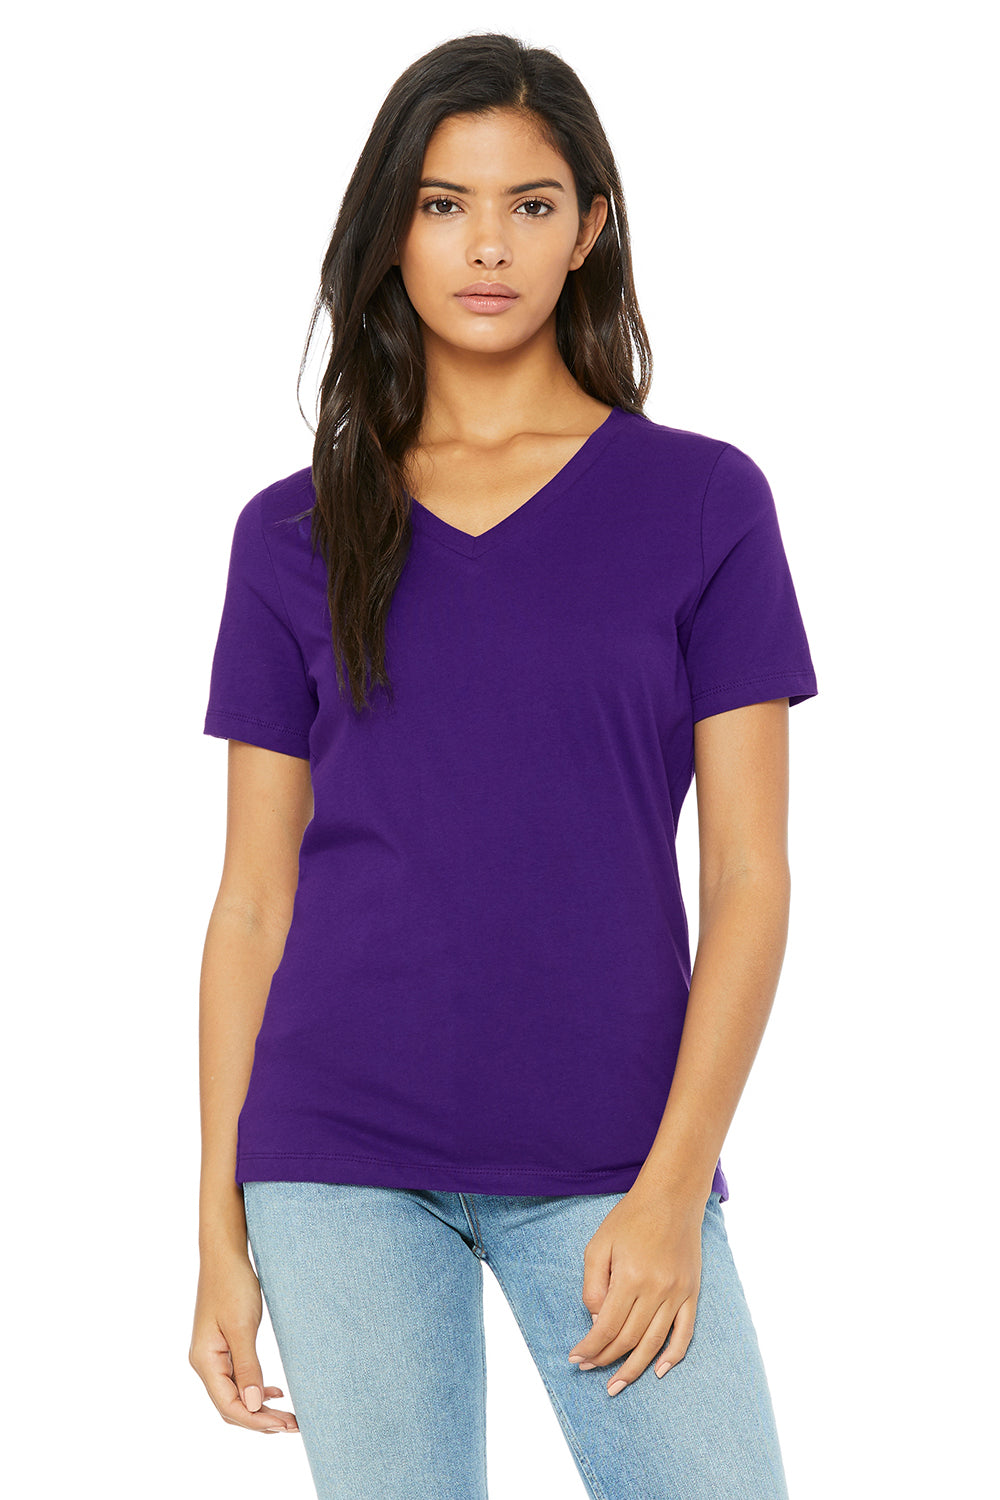 Bella + Canvas 6405 Womens Relaxed Jersey Short Sleeve V-Neck T-Shirt Purple Front